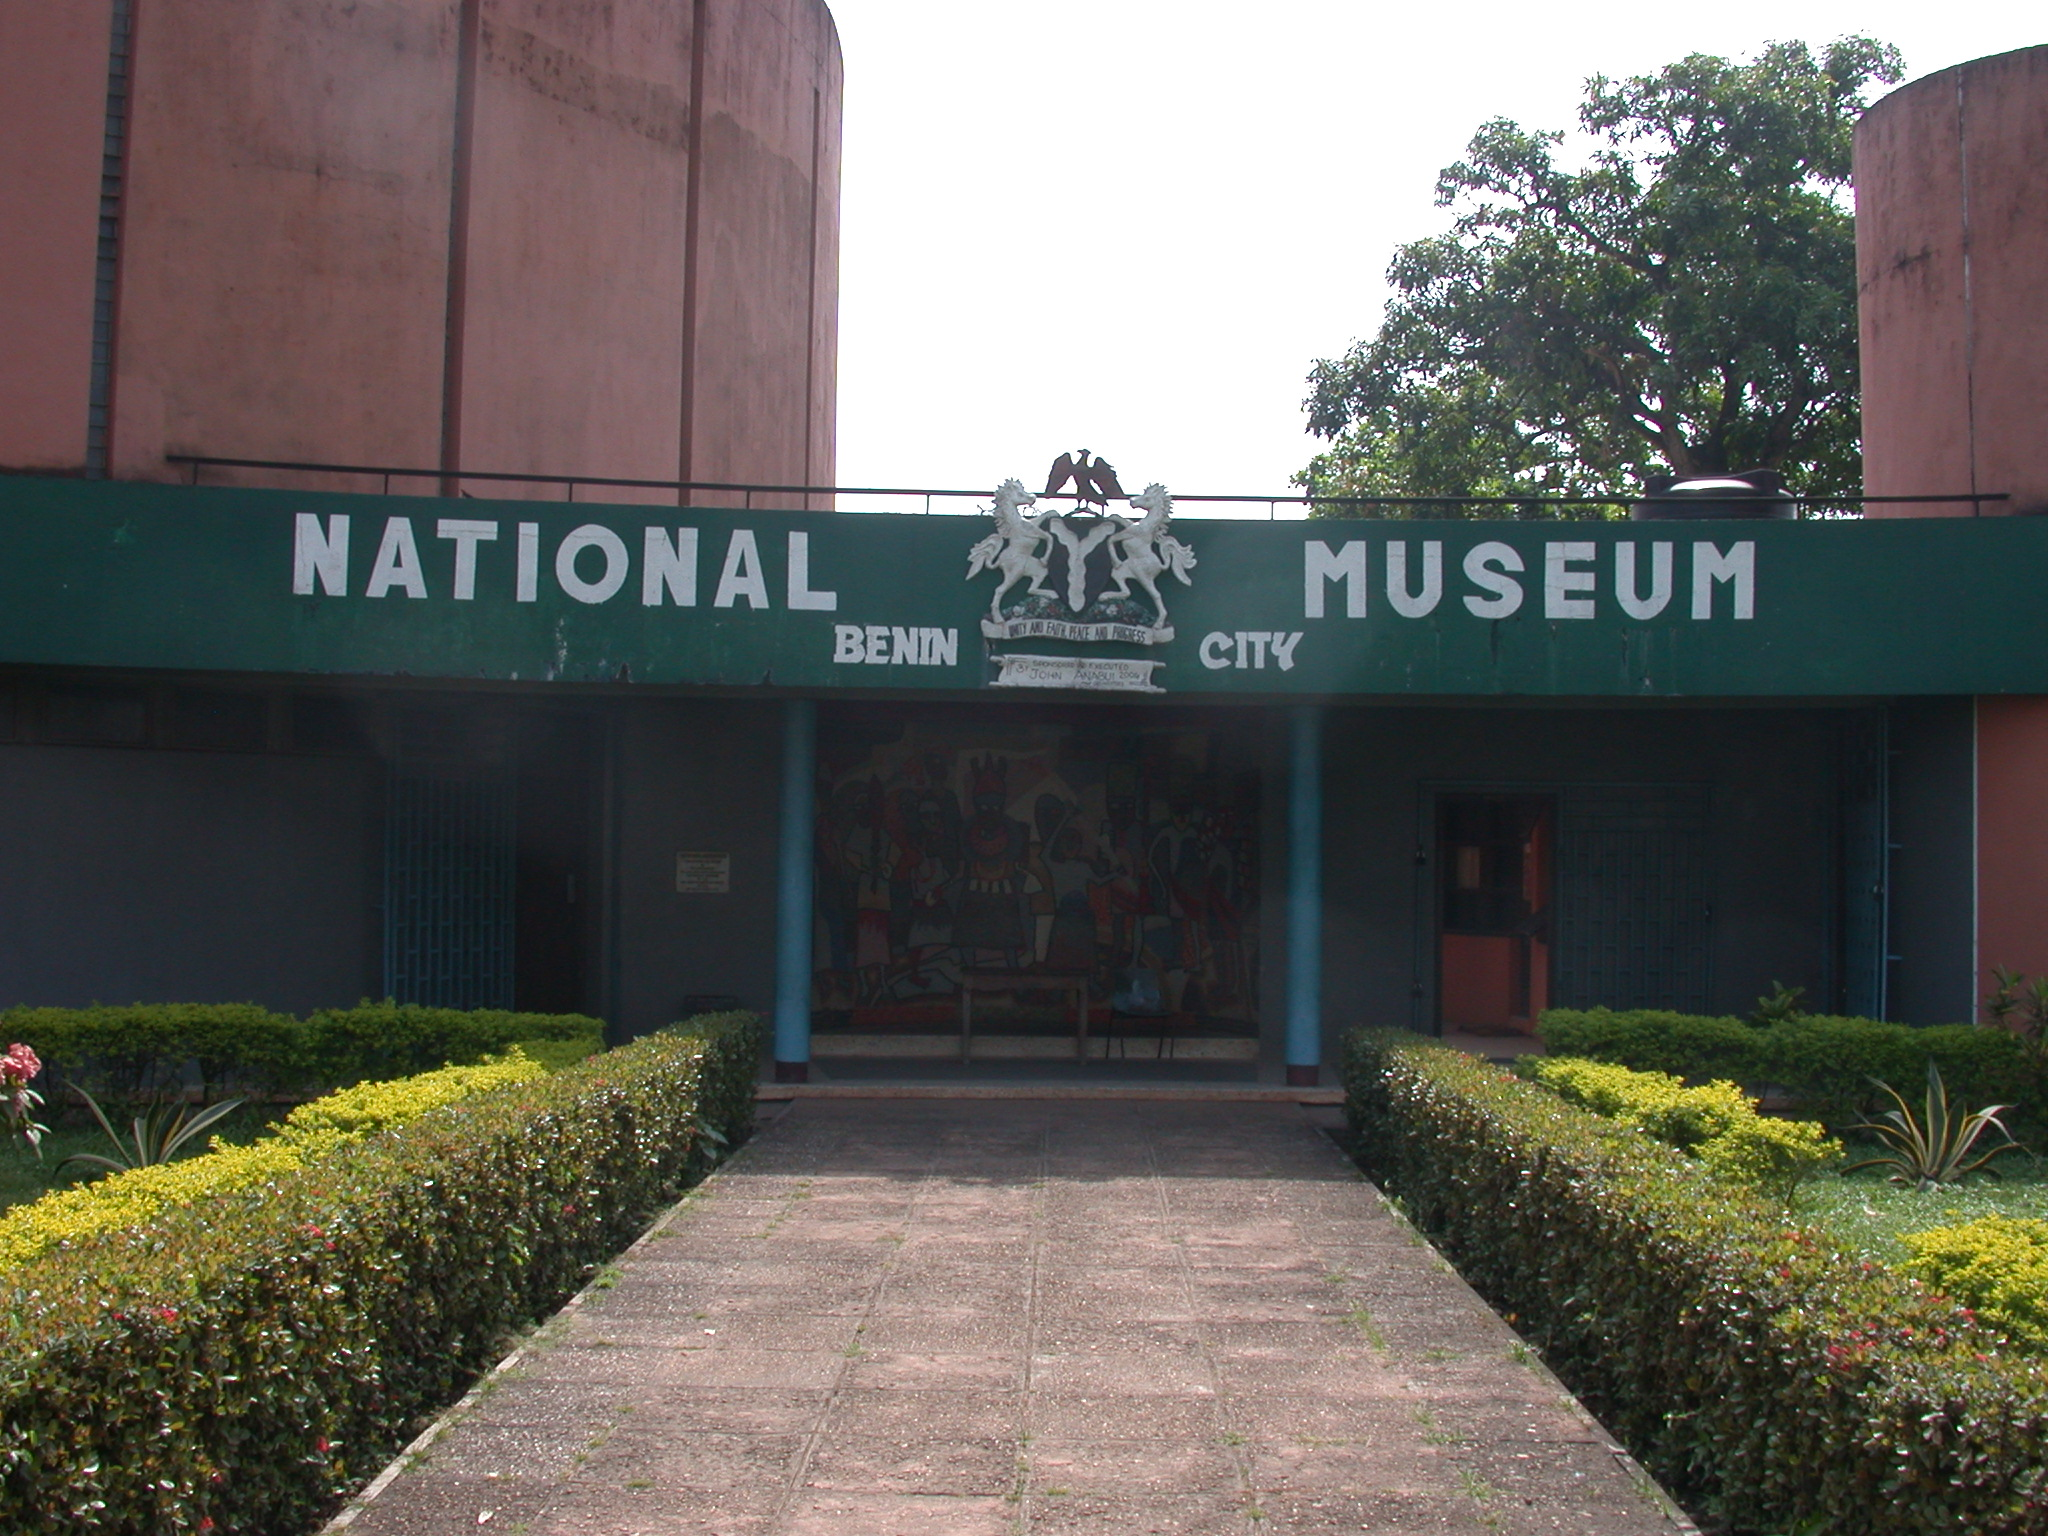 Entrance to Benin National Museum, Ring Road, Kings Square, Benin City, Nigeria